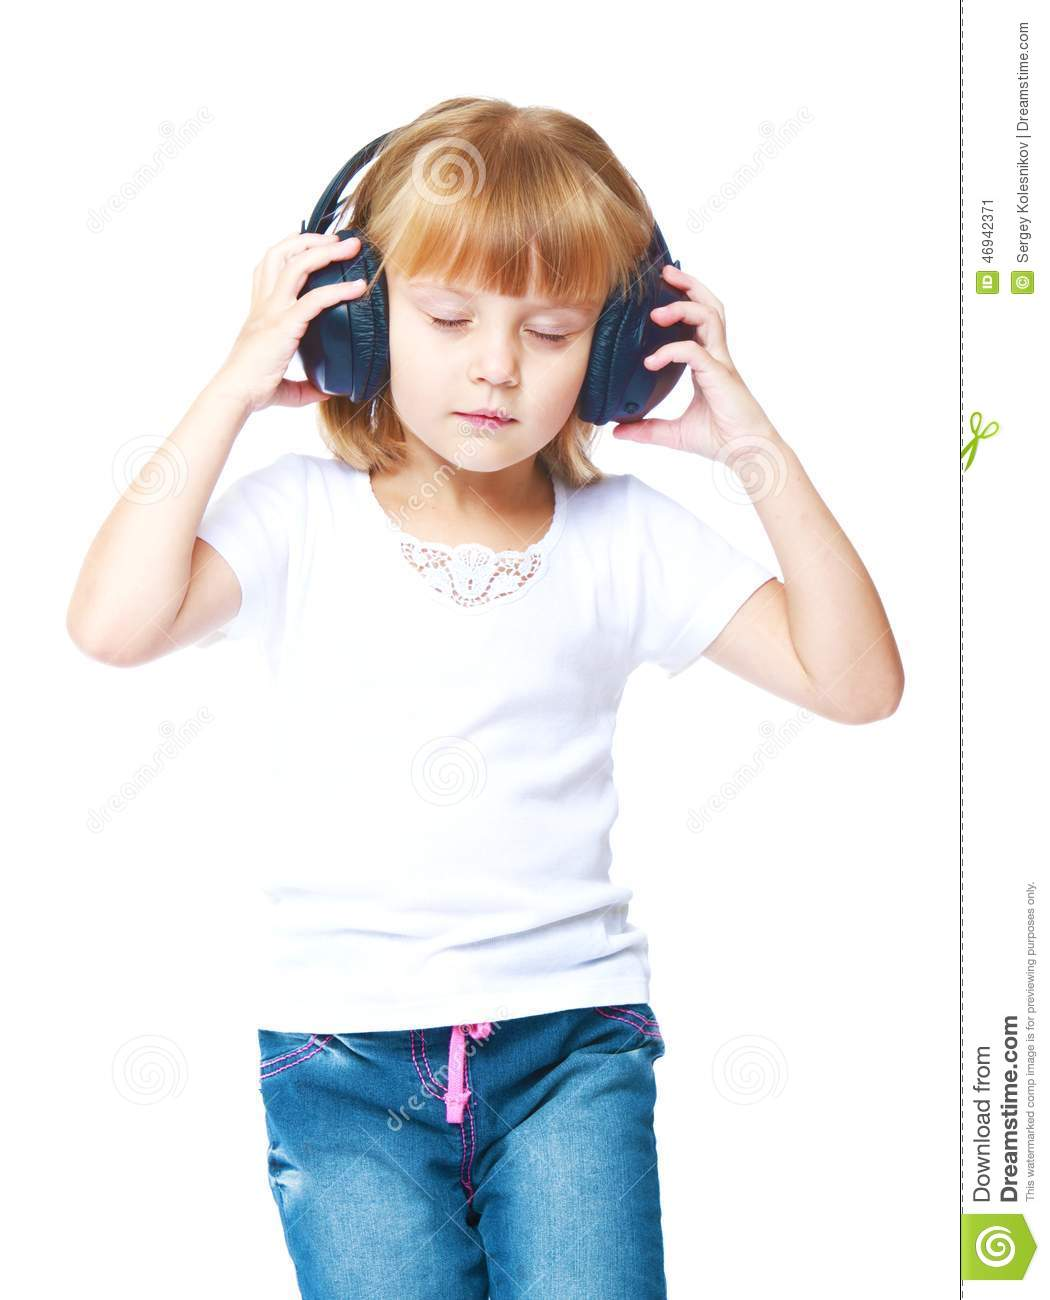 little girl in blue jeans stock image image of audio